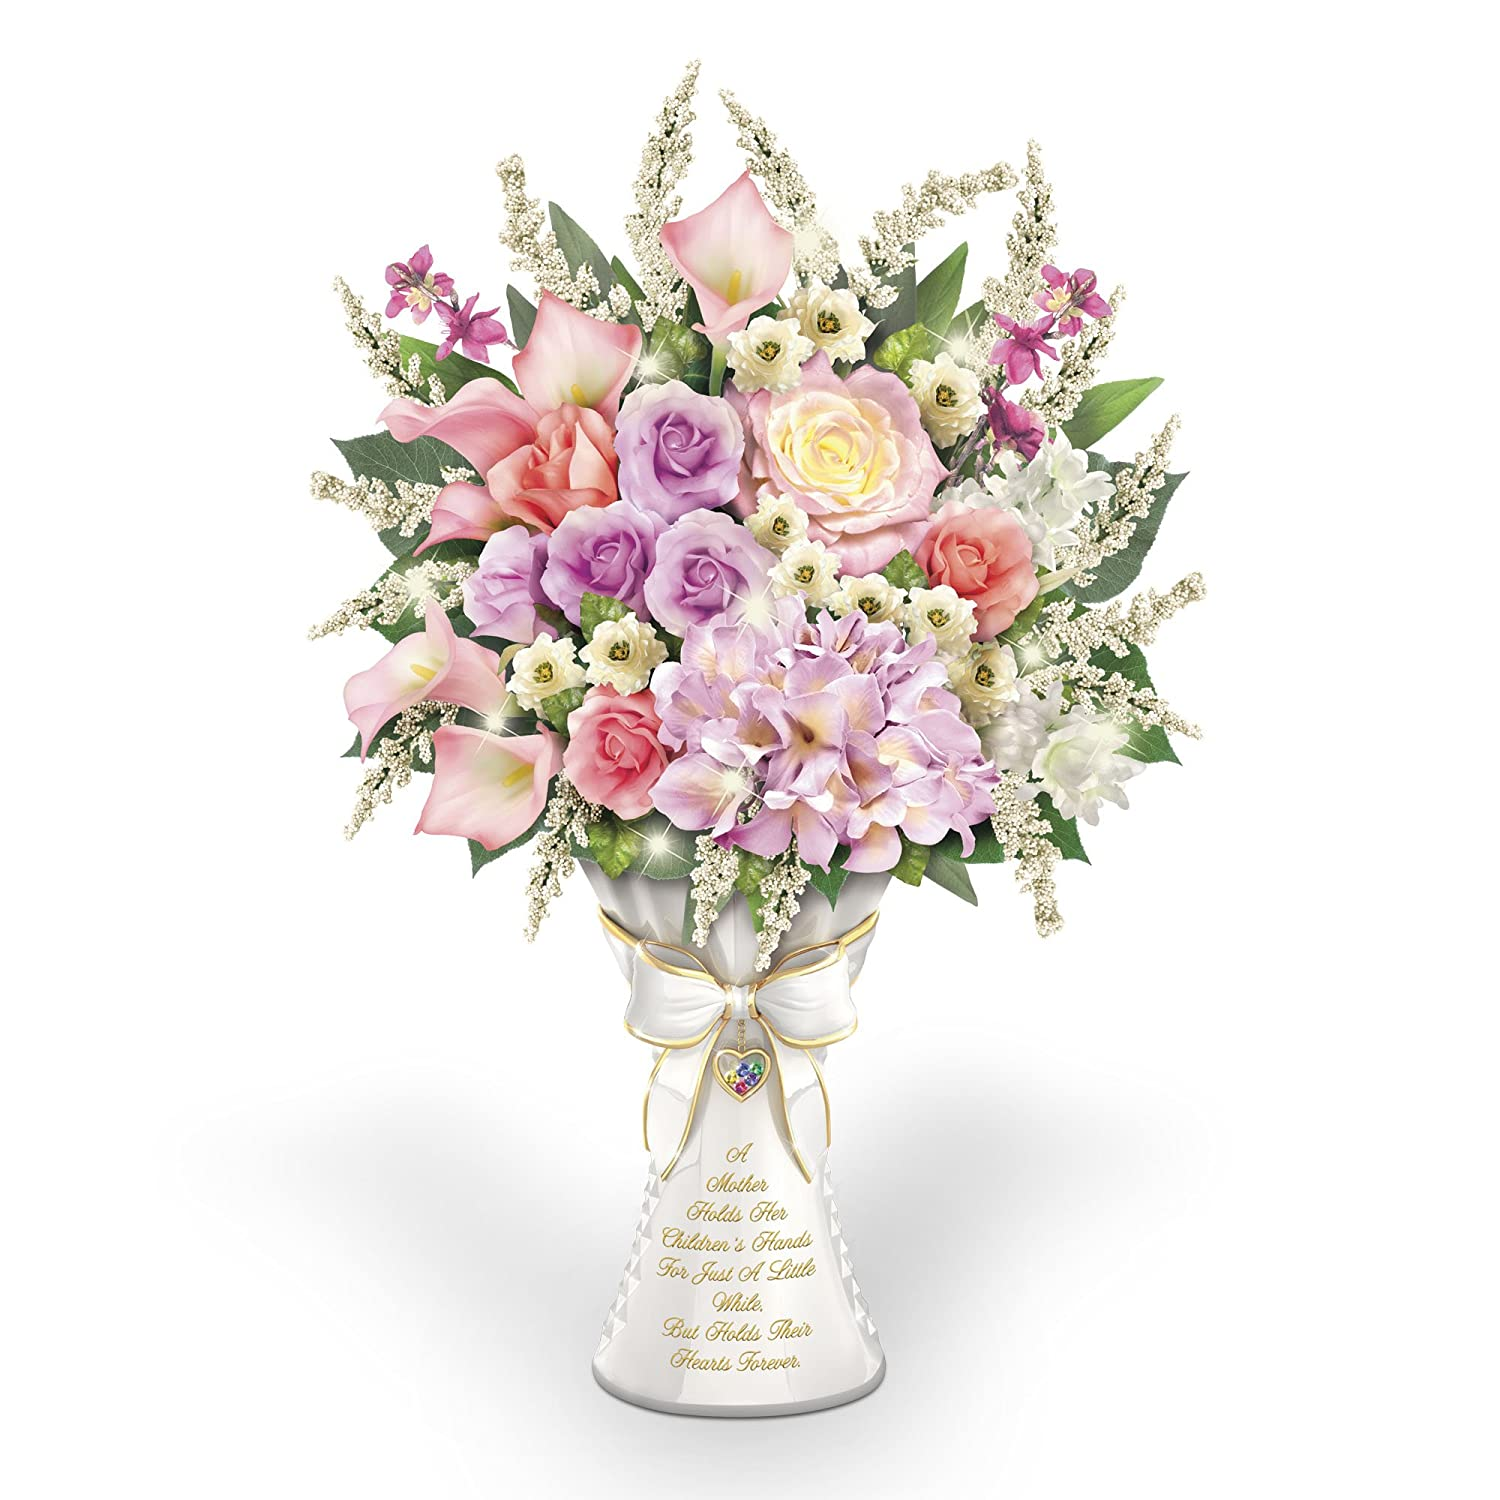 'A Mother's Love' Personalised Birthstone Table Centrepiece Always In Bloom® Lighted Floral Arrangement In Sculpted Vase With A Heart Locket You Personalise The Bradford Exchange